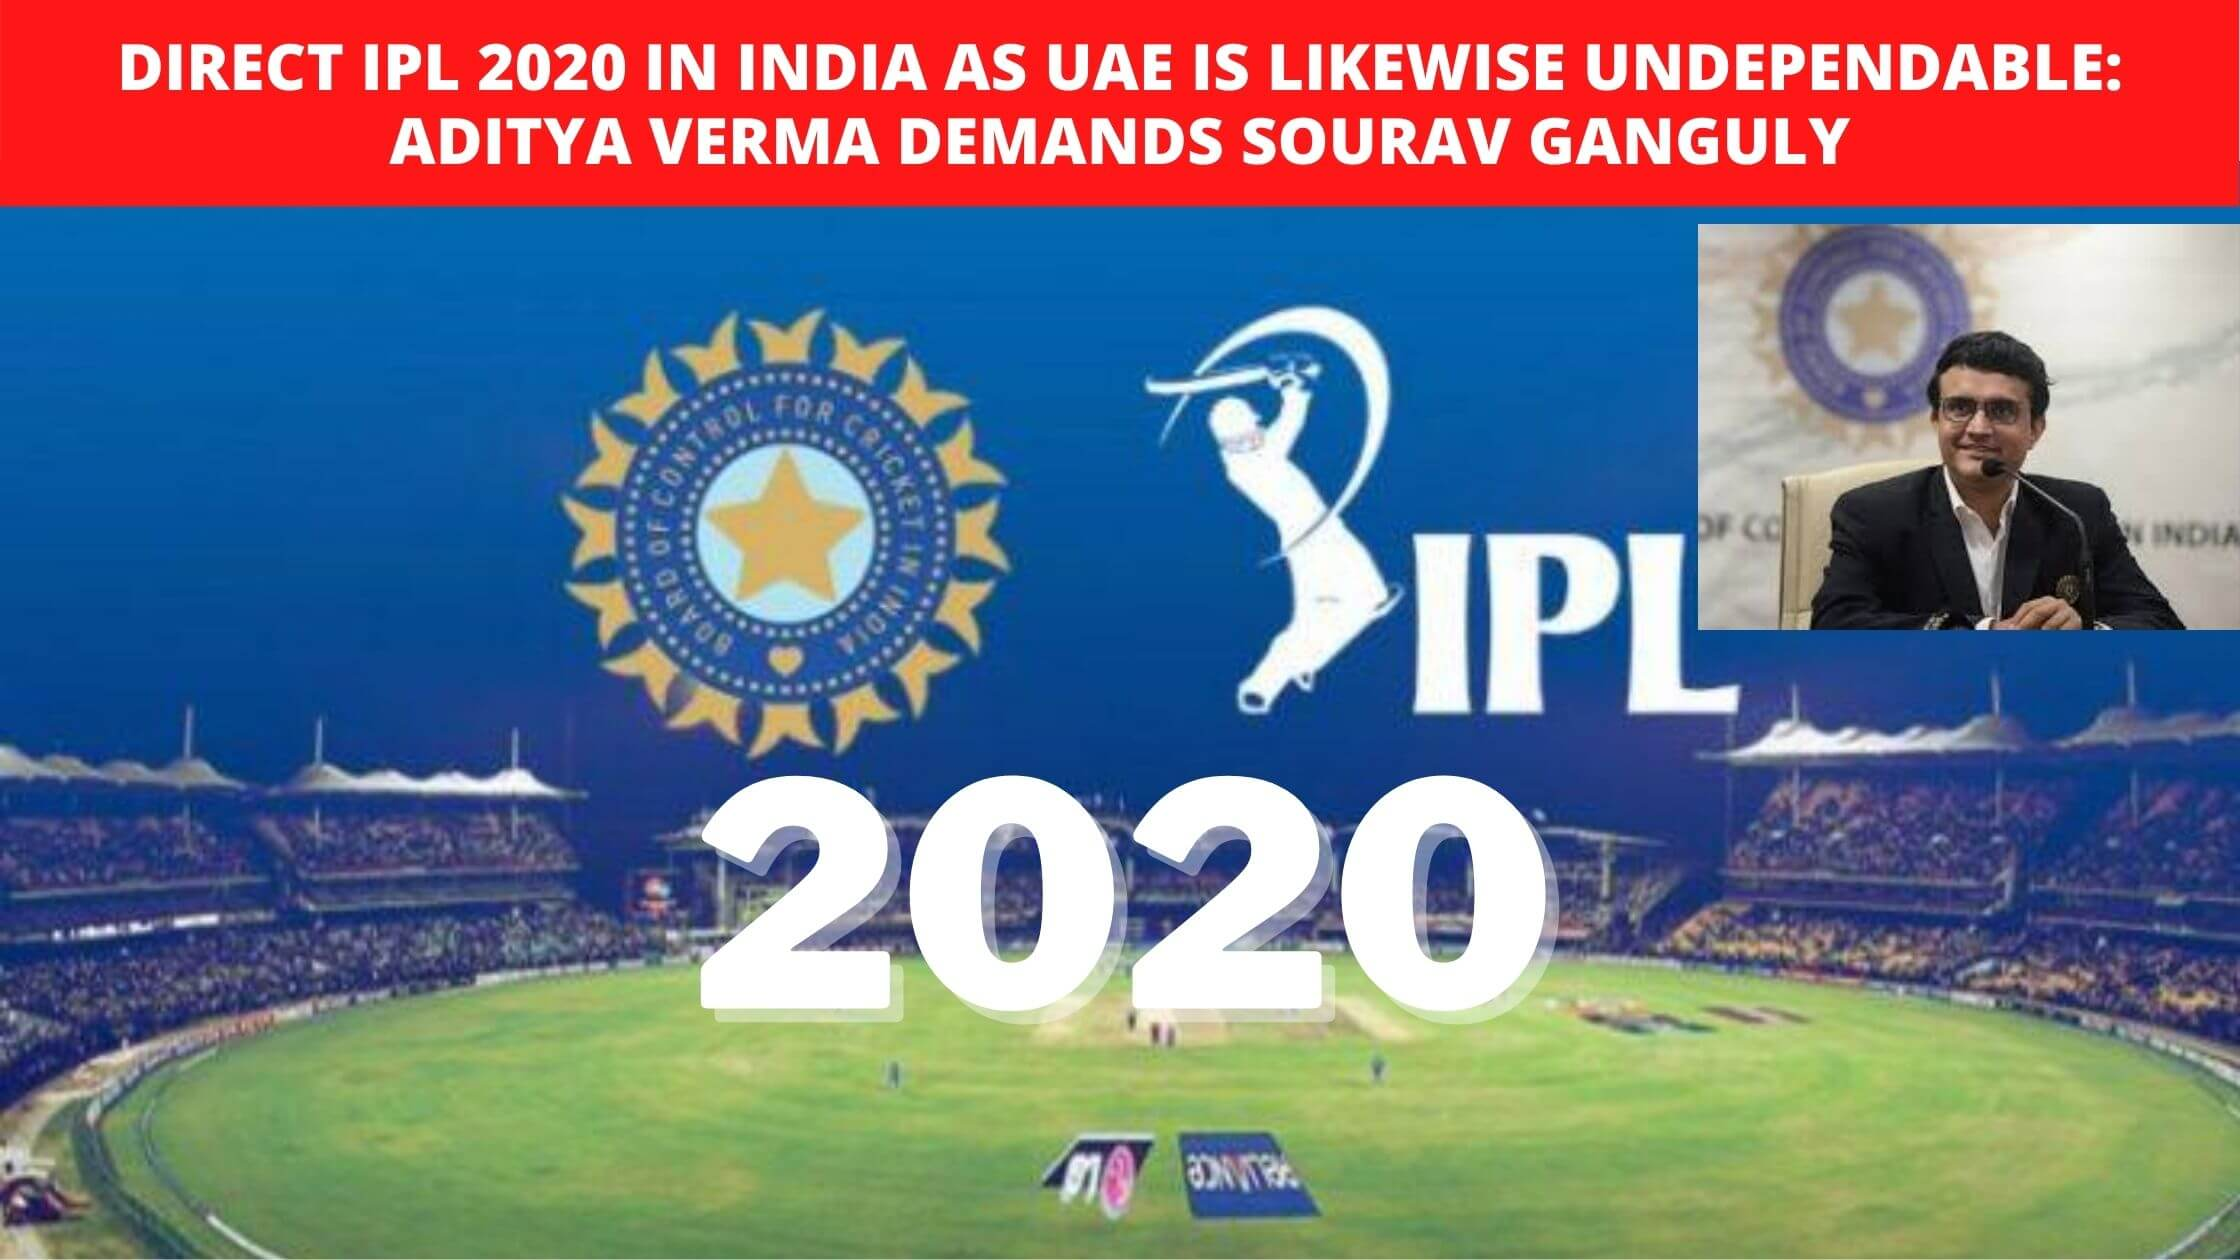 Direct IPL 2020 in India as UAE is likewise undependable_ Aditya Verma demands Sourav Ganguly